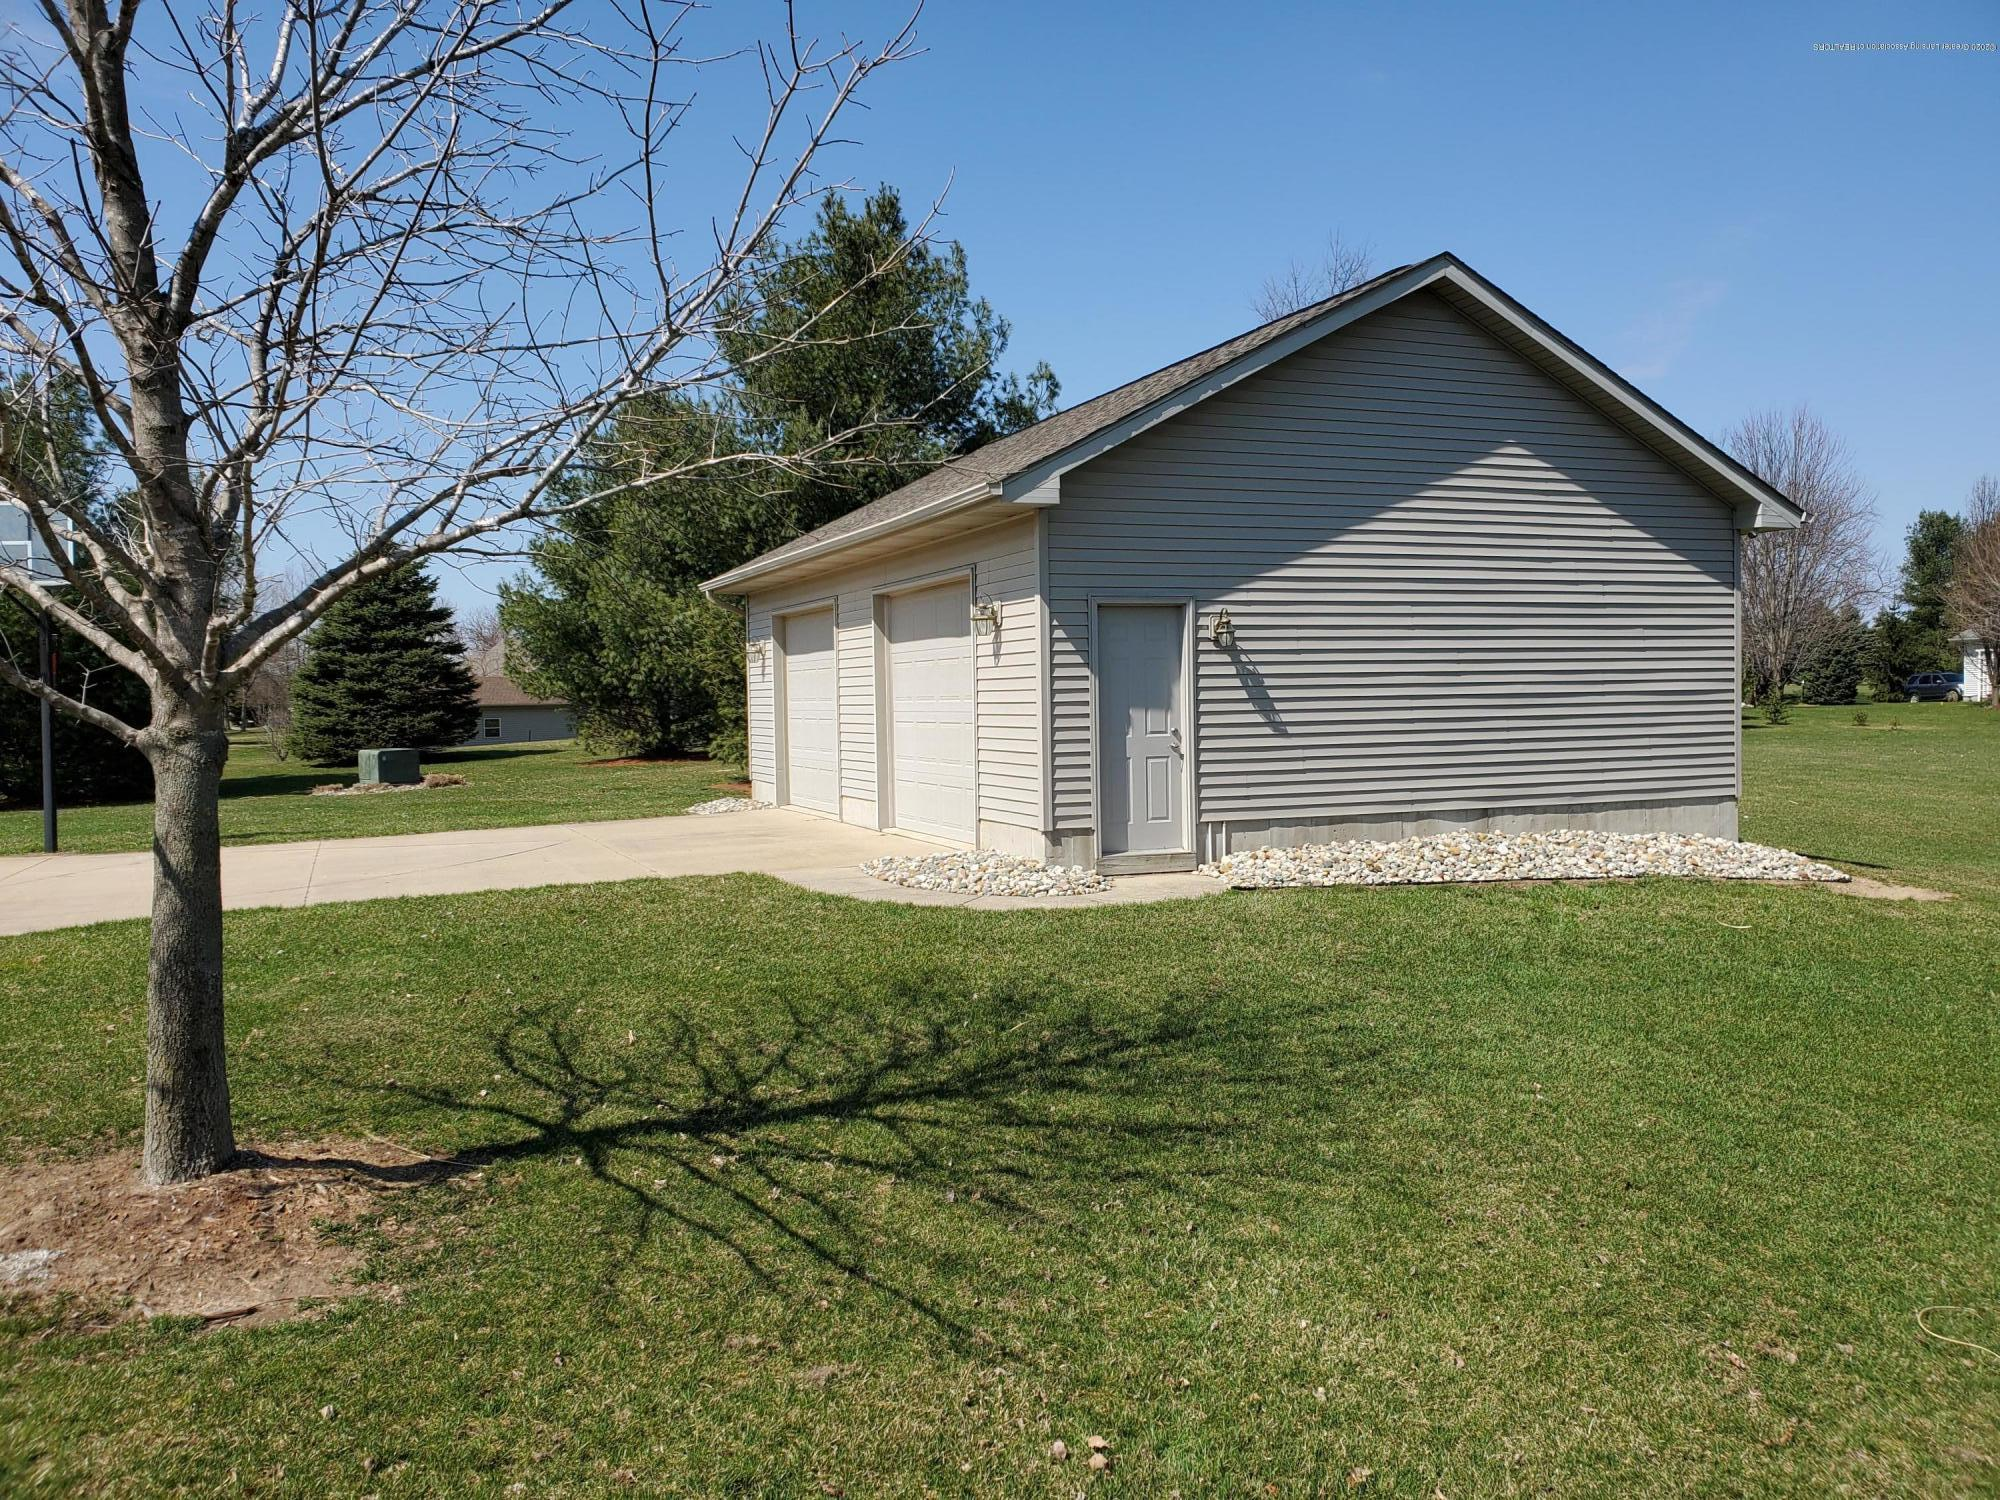 558 N Wheaton Rd - Pole Barn - 5